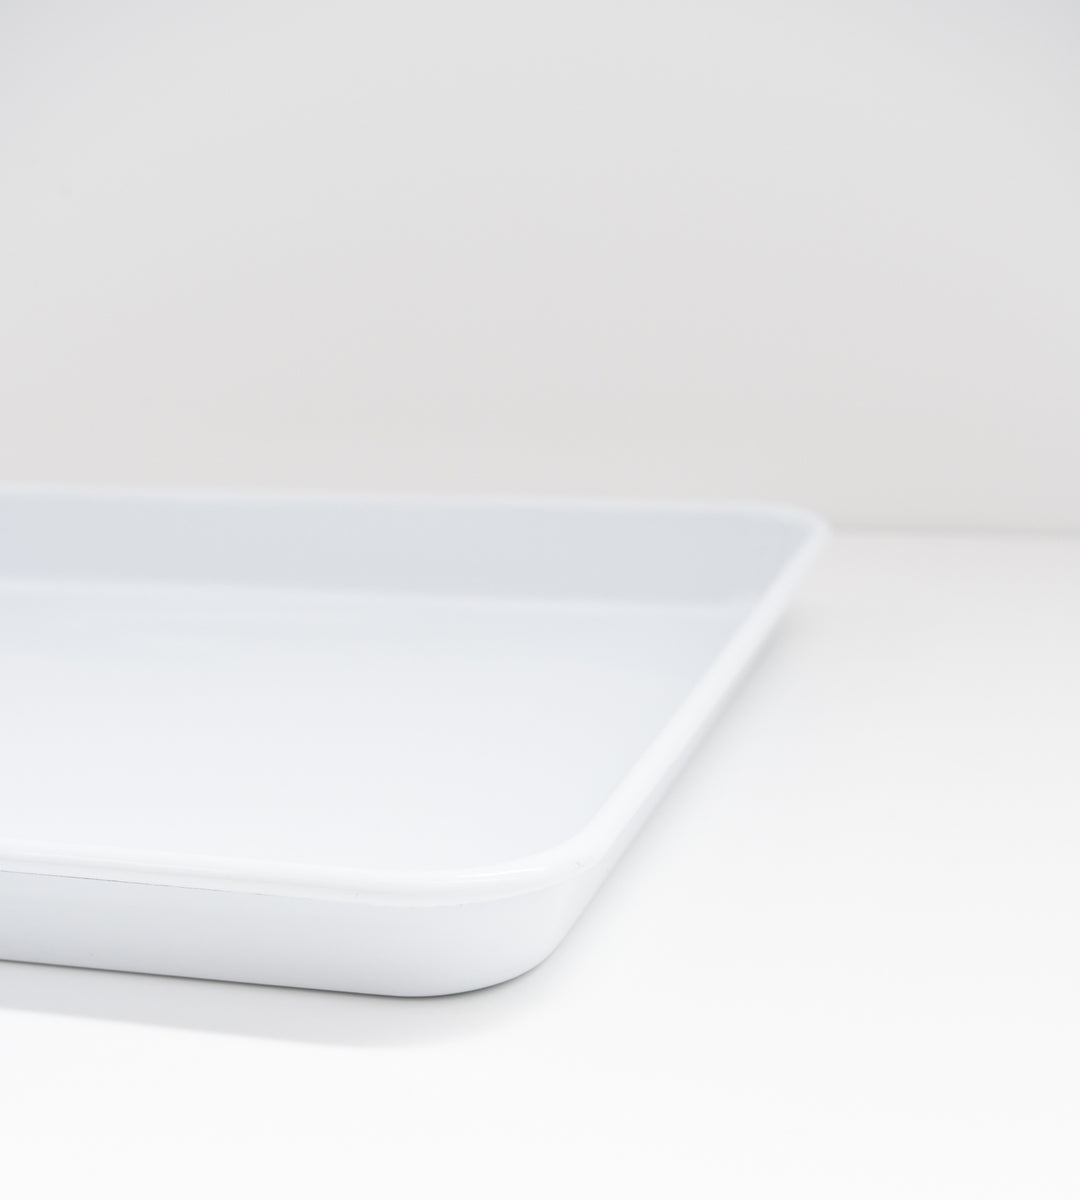 Falcon White Enamel Rectangular Tray